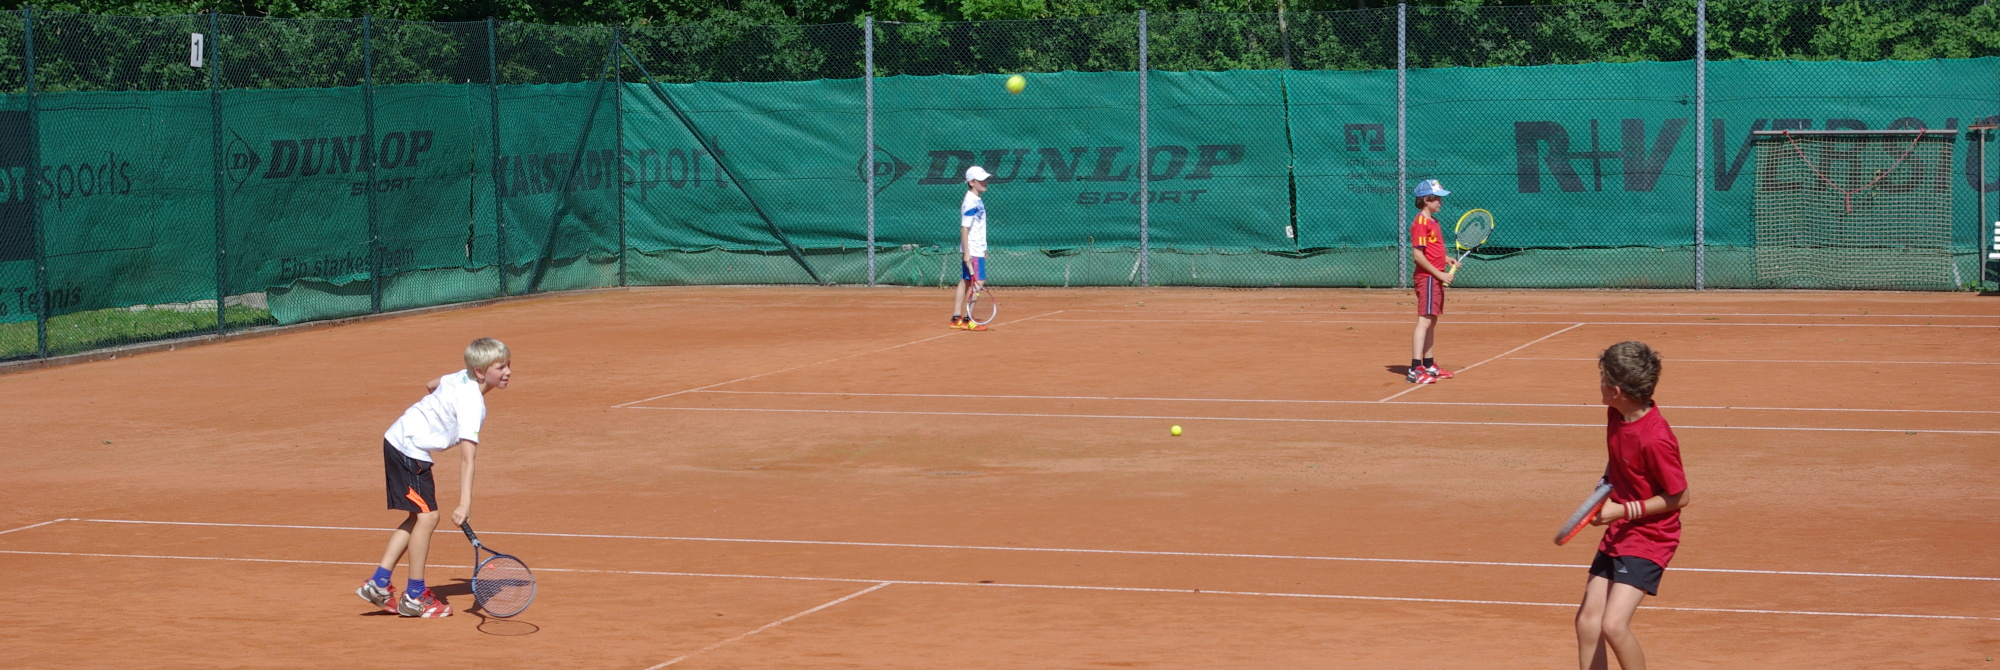 Tennis in Gräfenberg